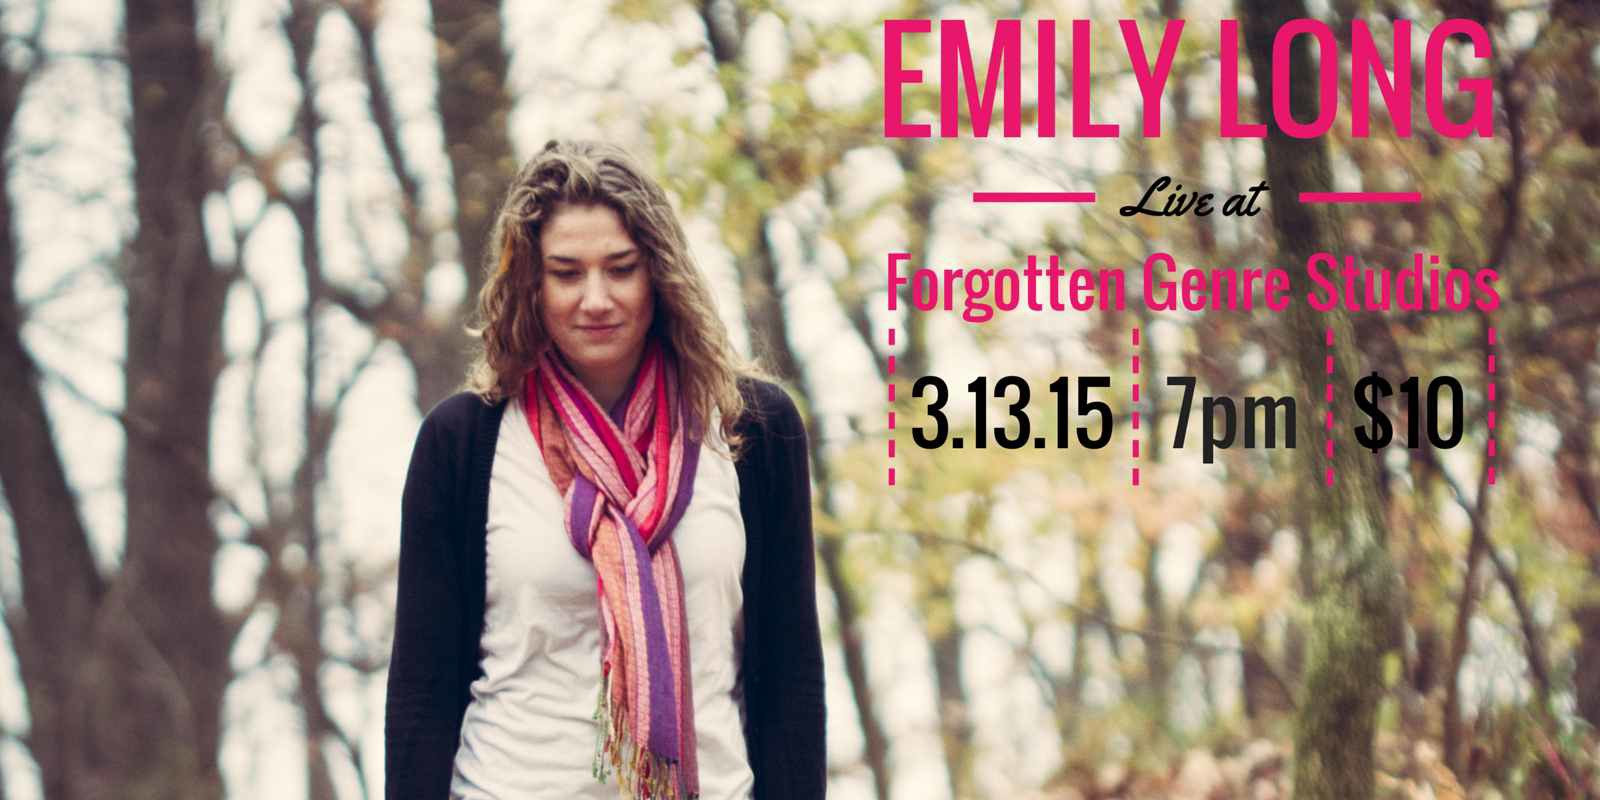 Emily Long Live at Forgotten Genre Studios